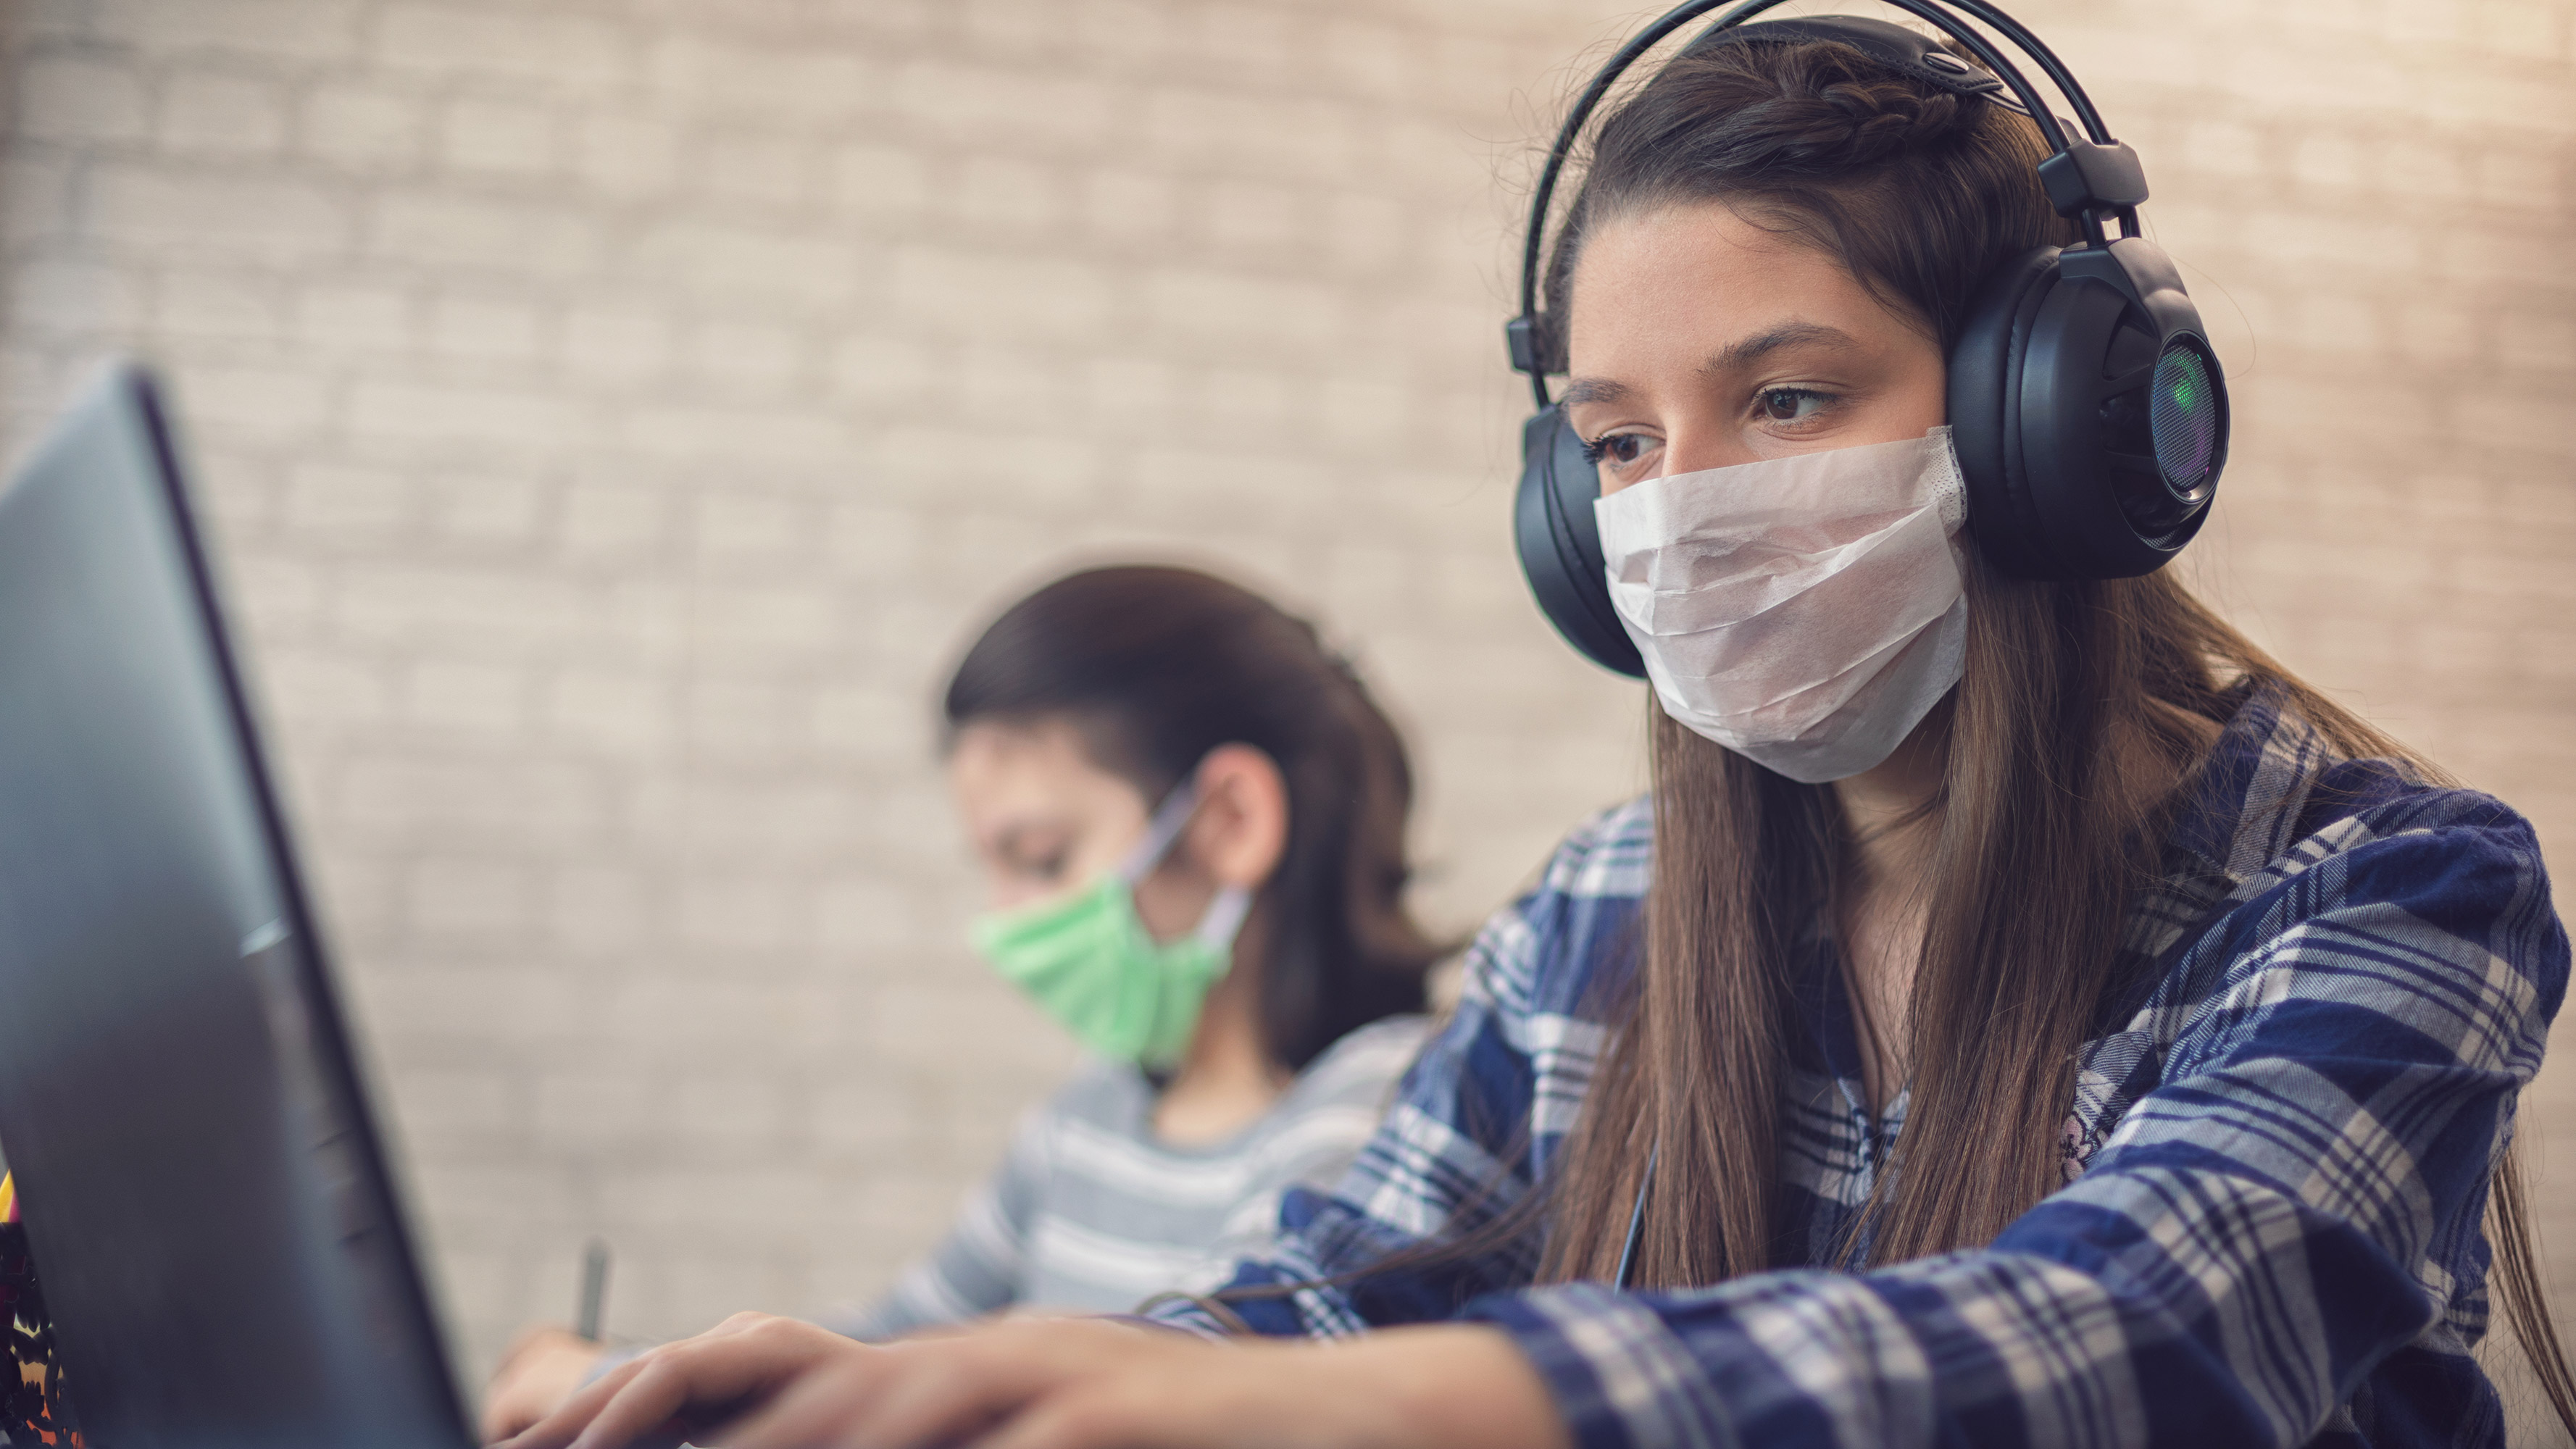 A young female student is seen wearing headphones and a face mask using a computer.